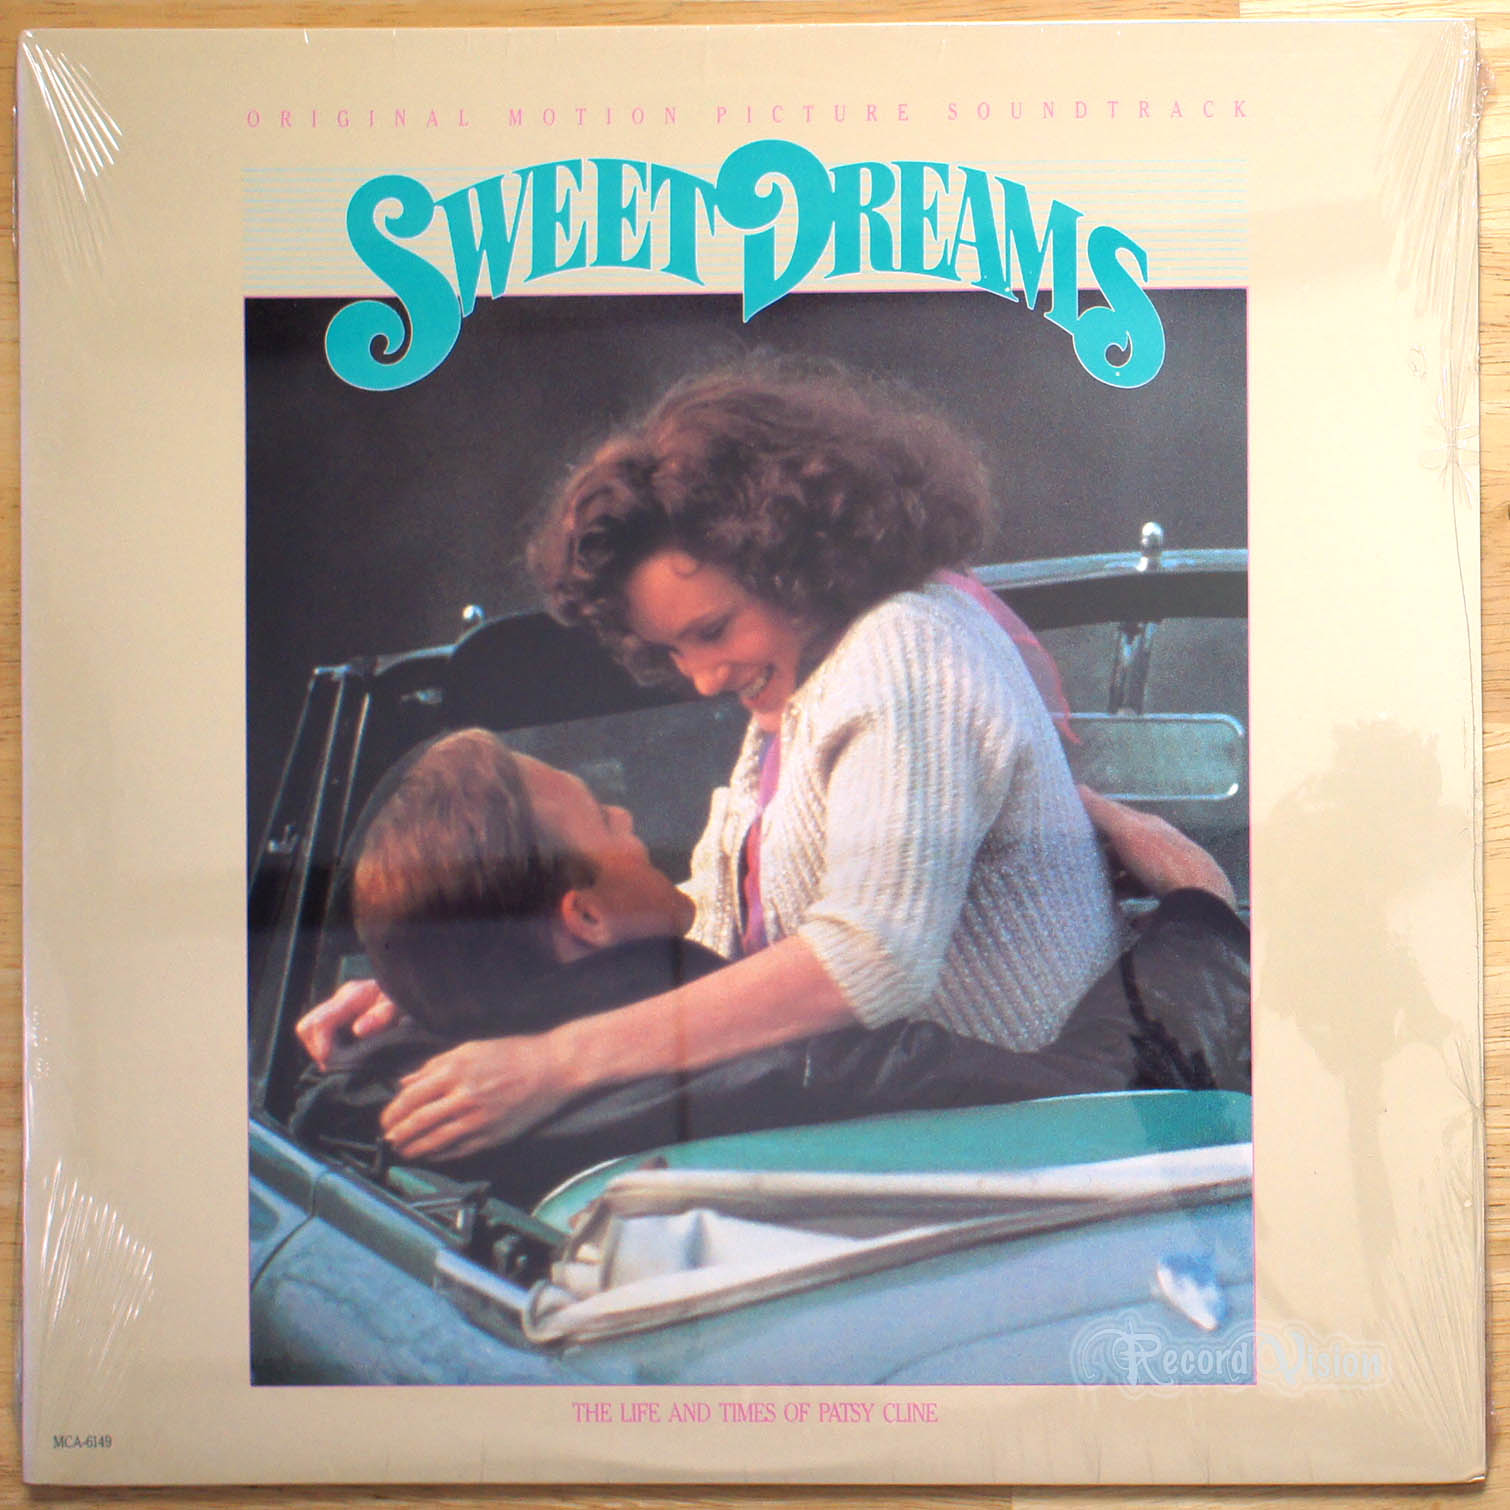 Assorted (Patsy Cline) Sweet Dreams